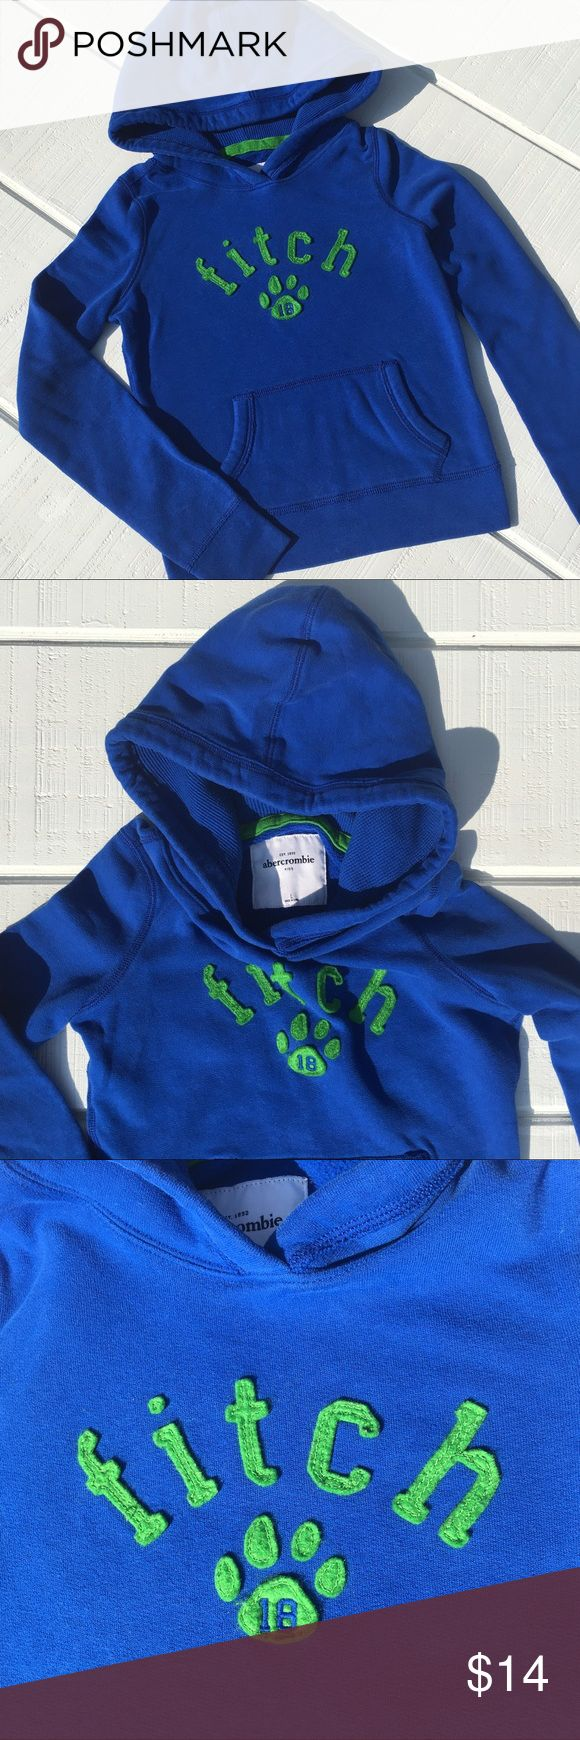 Girls Abercrombie Kids Sweatshirt Beautiful royal blue Abercrombie girls hoodie size L (8).  Soft and comfortable!  There is a small bleach mark on the hood (pictured), though can't be seen when the hood is down.  Otherwise, in EXCELLENT condition!  From a smoke and pet and smoke free home!  Bundle and save! abercrombie kids Shirts & Tops Sweatshirts & Hoodies